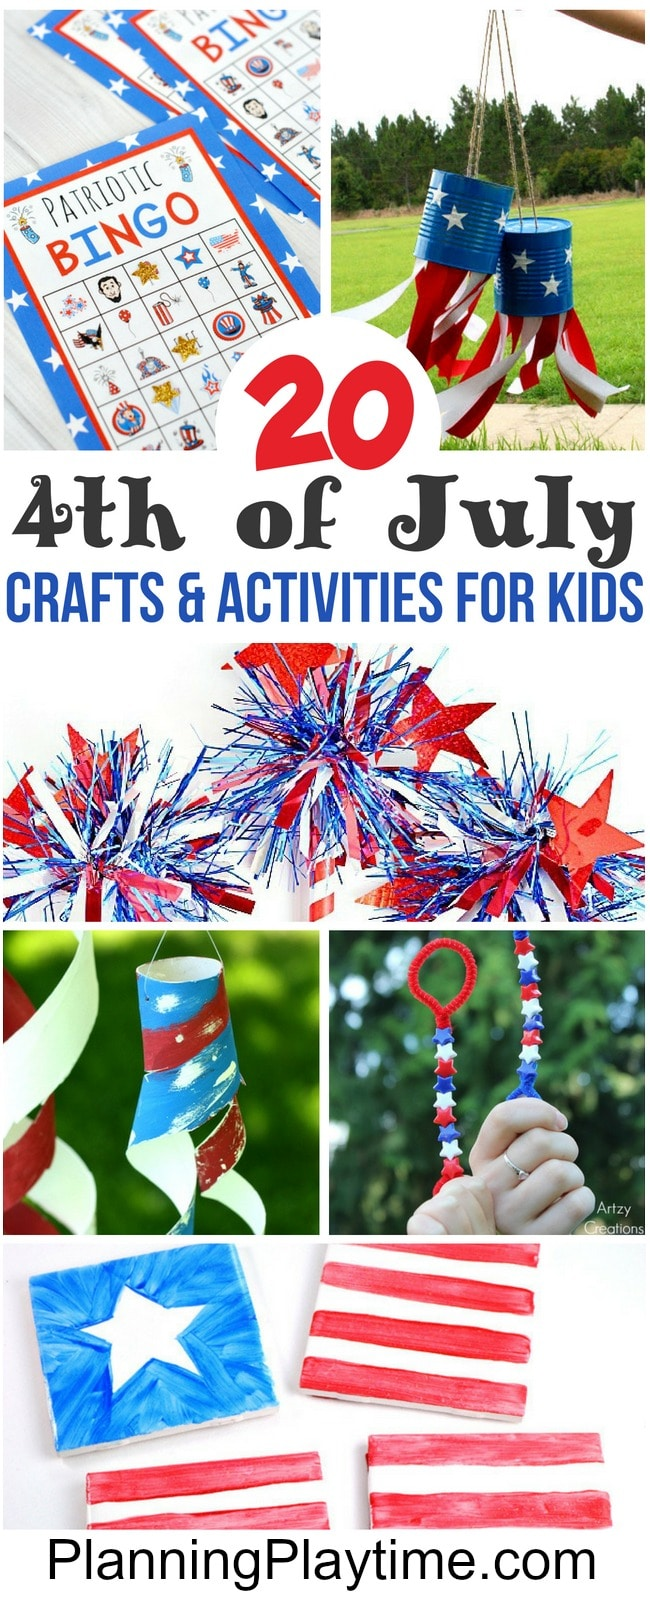 Awesome 4th of July Crafts for kids